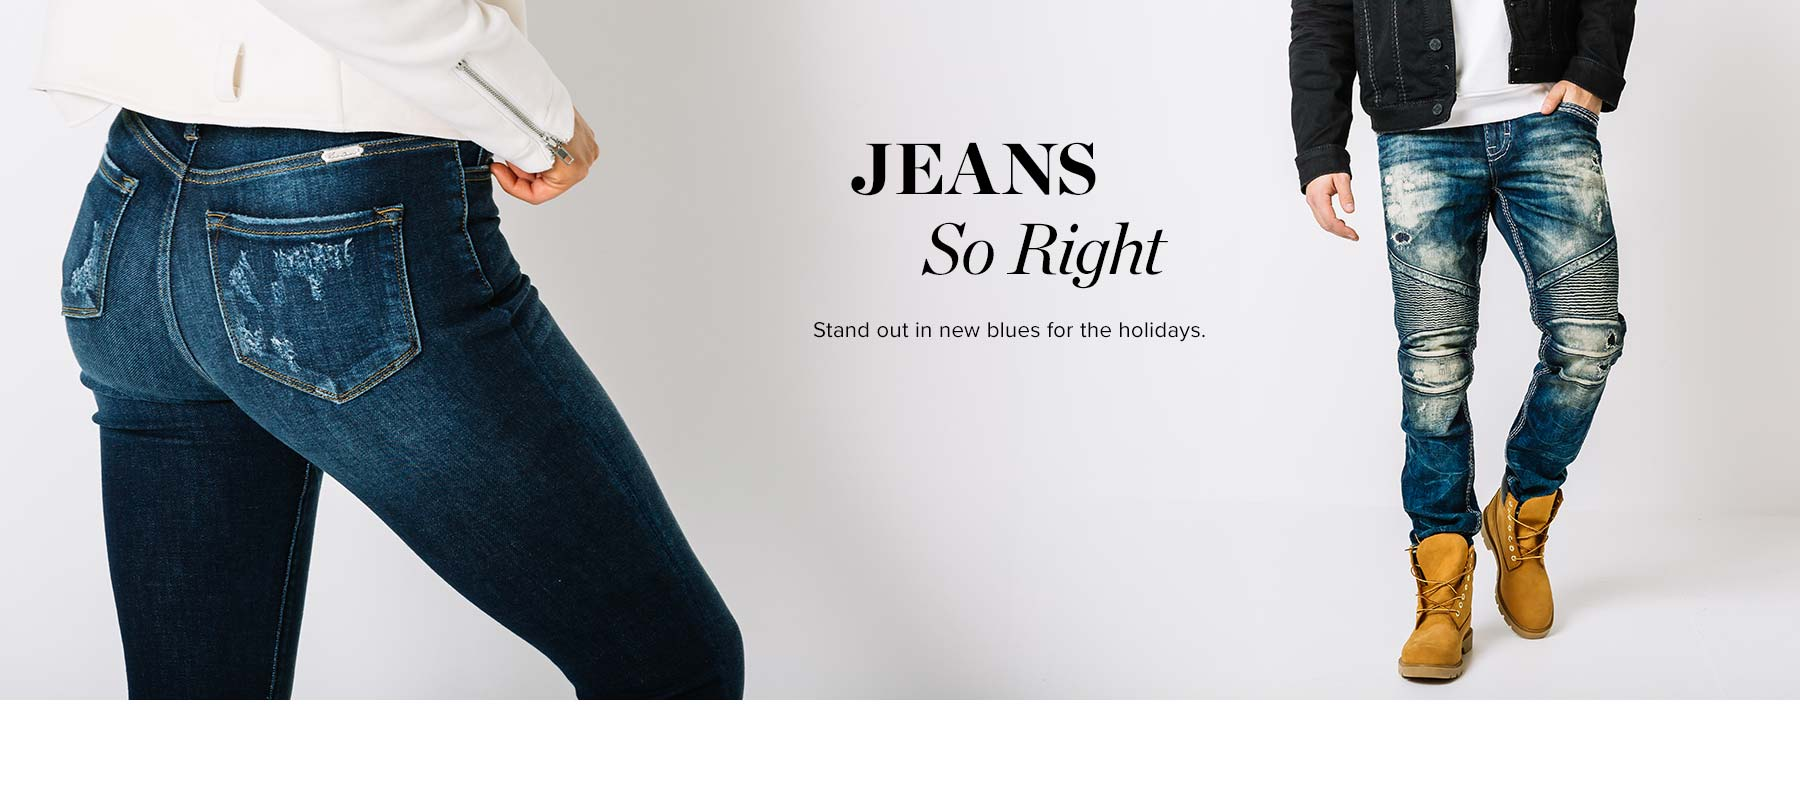 Jeans So Right - Stand out in new blues for the holidays. Couple modeling Buckle denim.